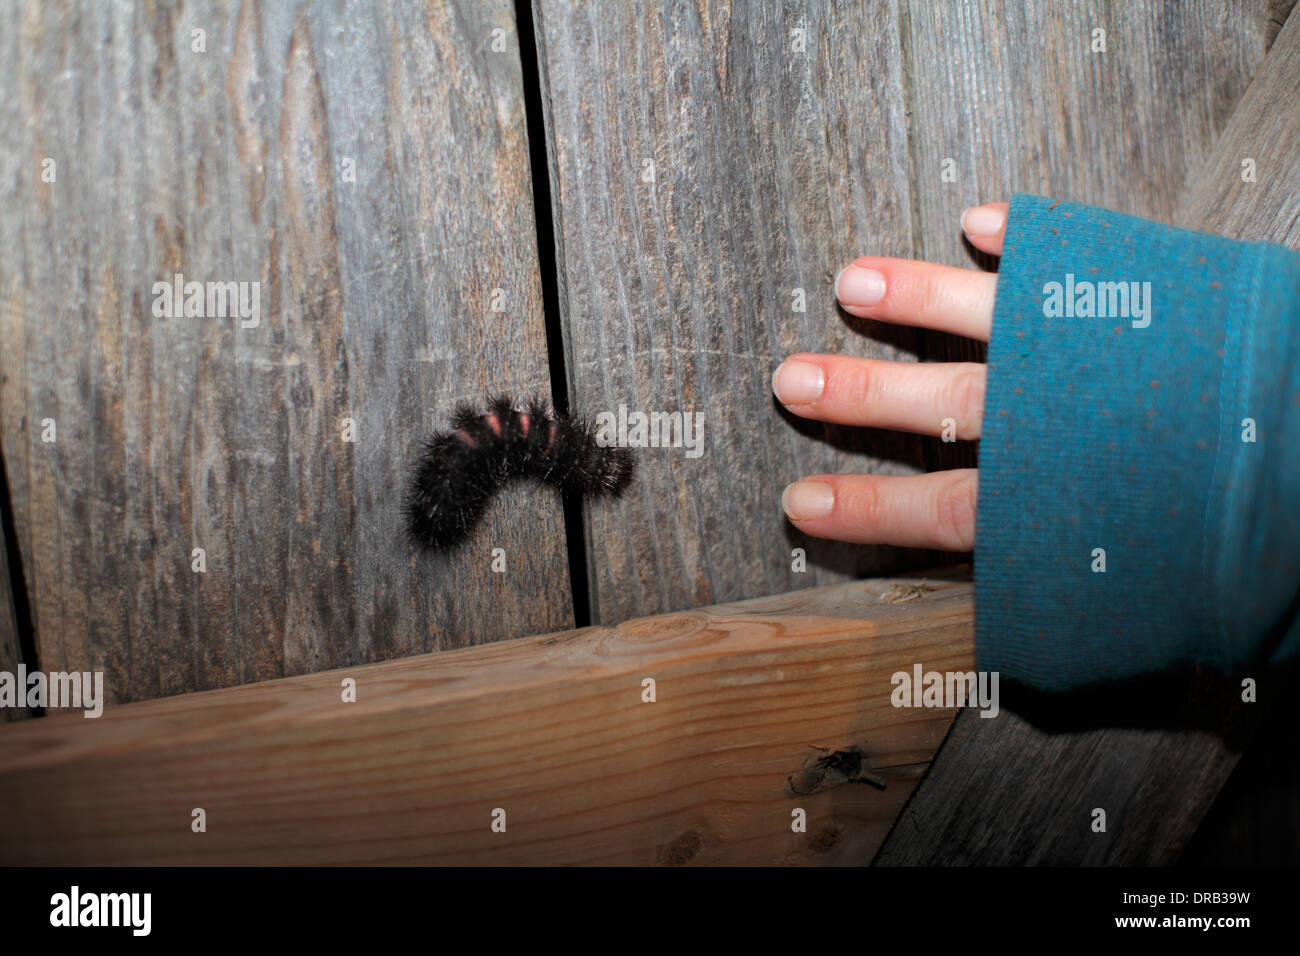 Wooly bear caterpillar. - Stock Image